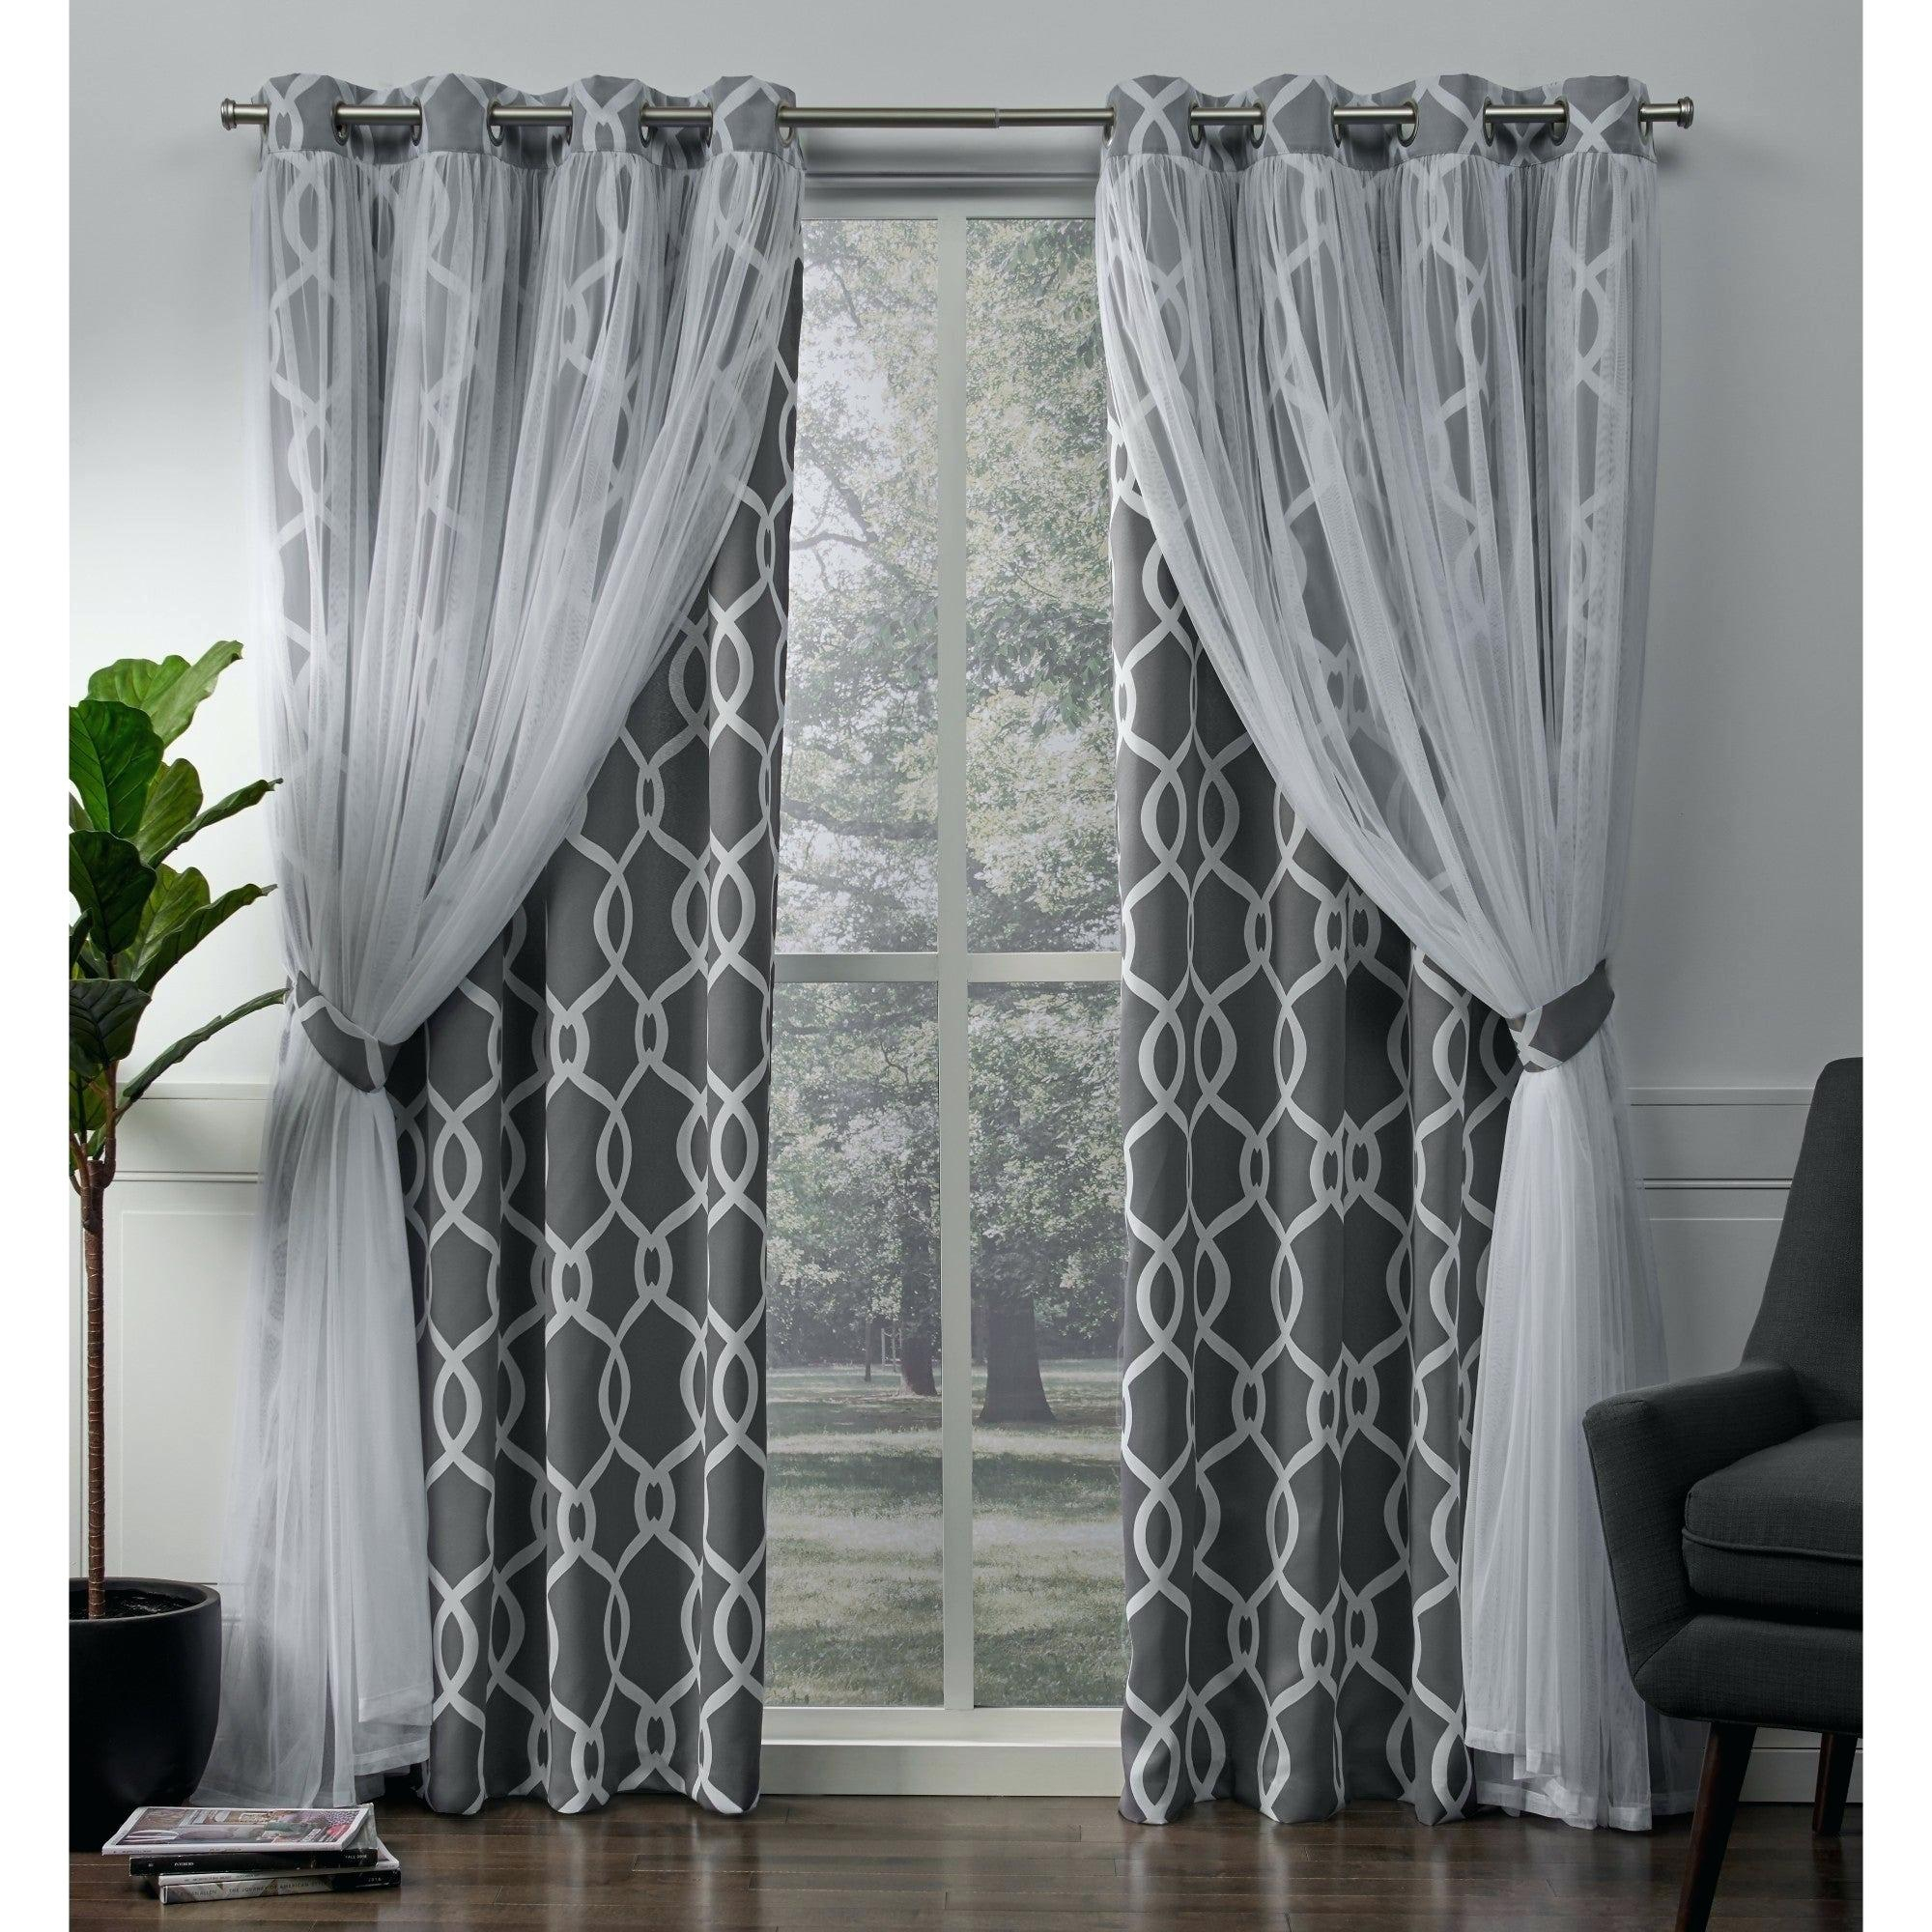 Purple And Grey Curtains Home Thermal Woven Blackout Grommet Within Solid Insulated Thermal Blackout Curtain Panel Pairs (View 22 of 30)